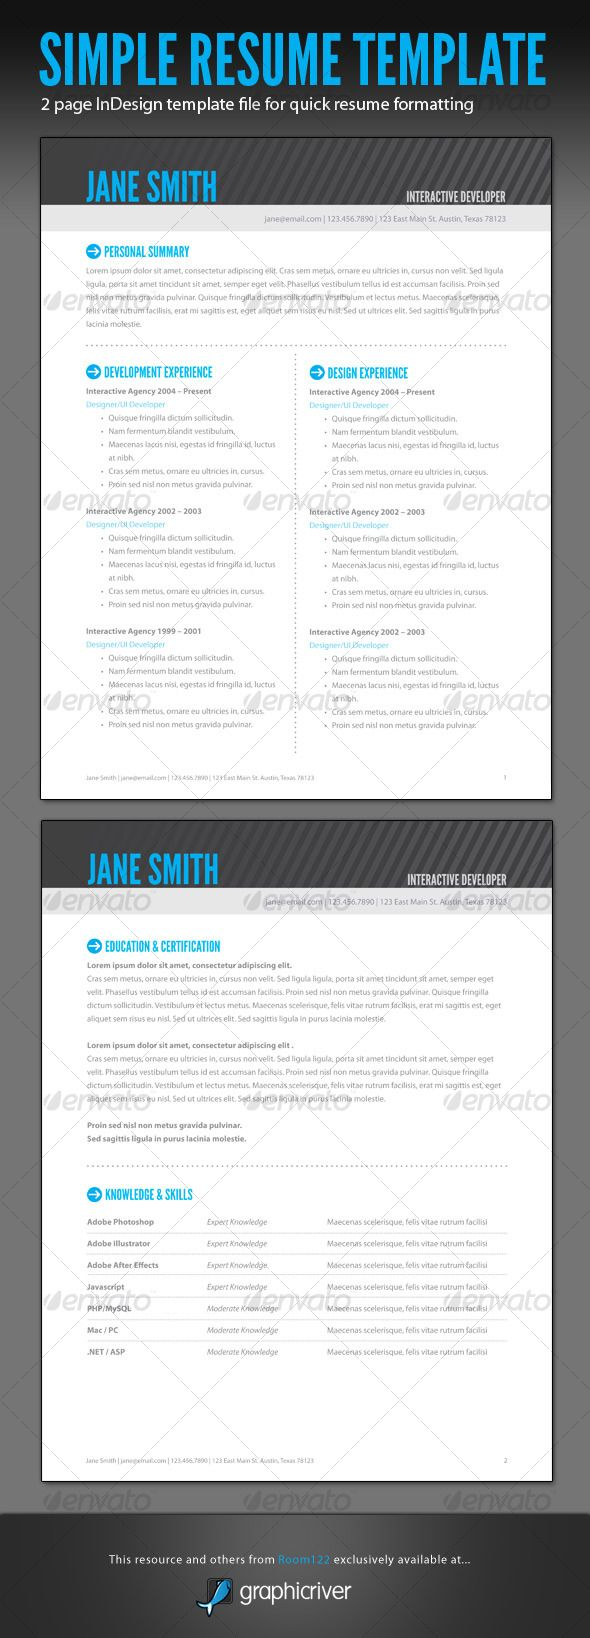 best 25 simple resume ideas on pinterest resume job resume template and simple resume template. Black Bedroom Furniture Sets. Home Design Ideas